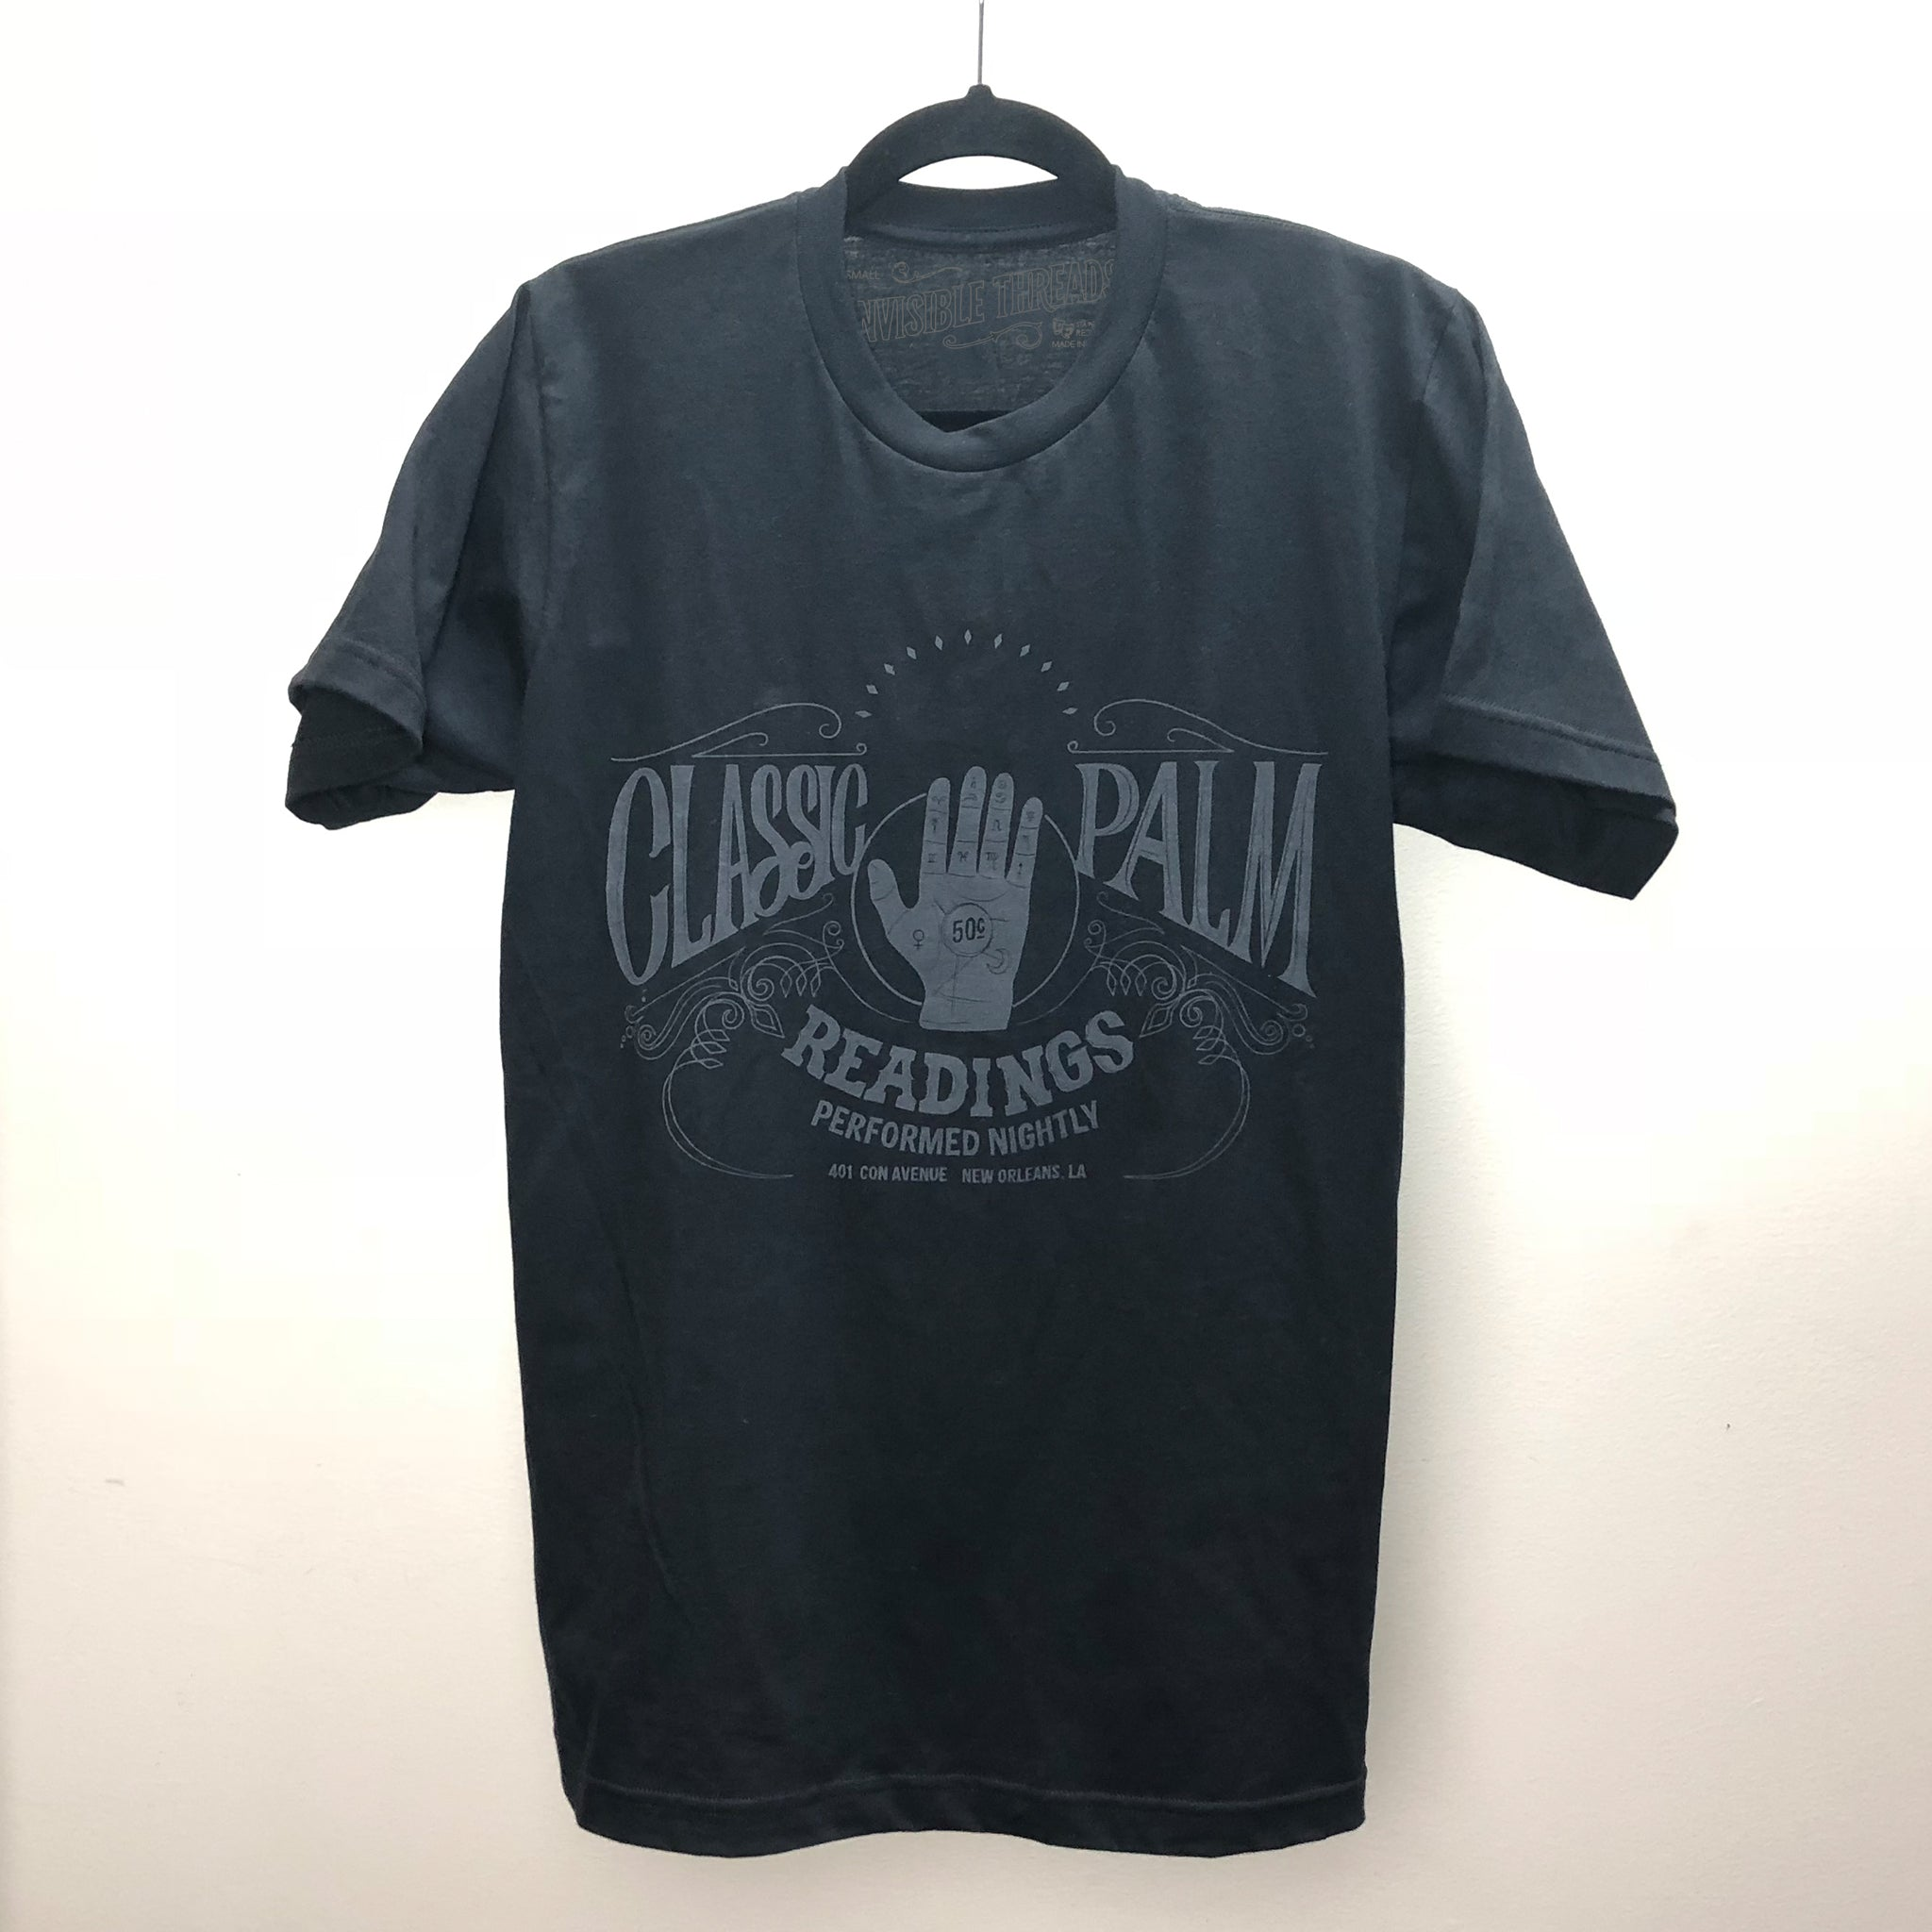 Invisible Threads Classic Palm Readings Friday the 13th fortune telling graphic tee seance spirit t-shirt